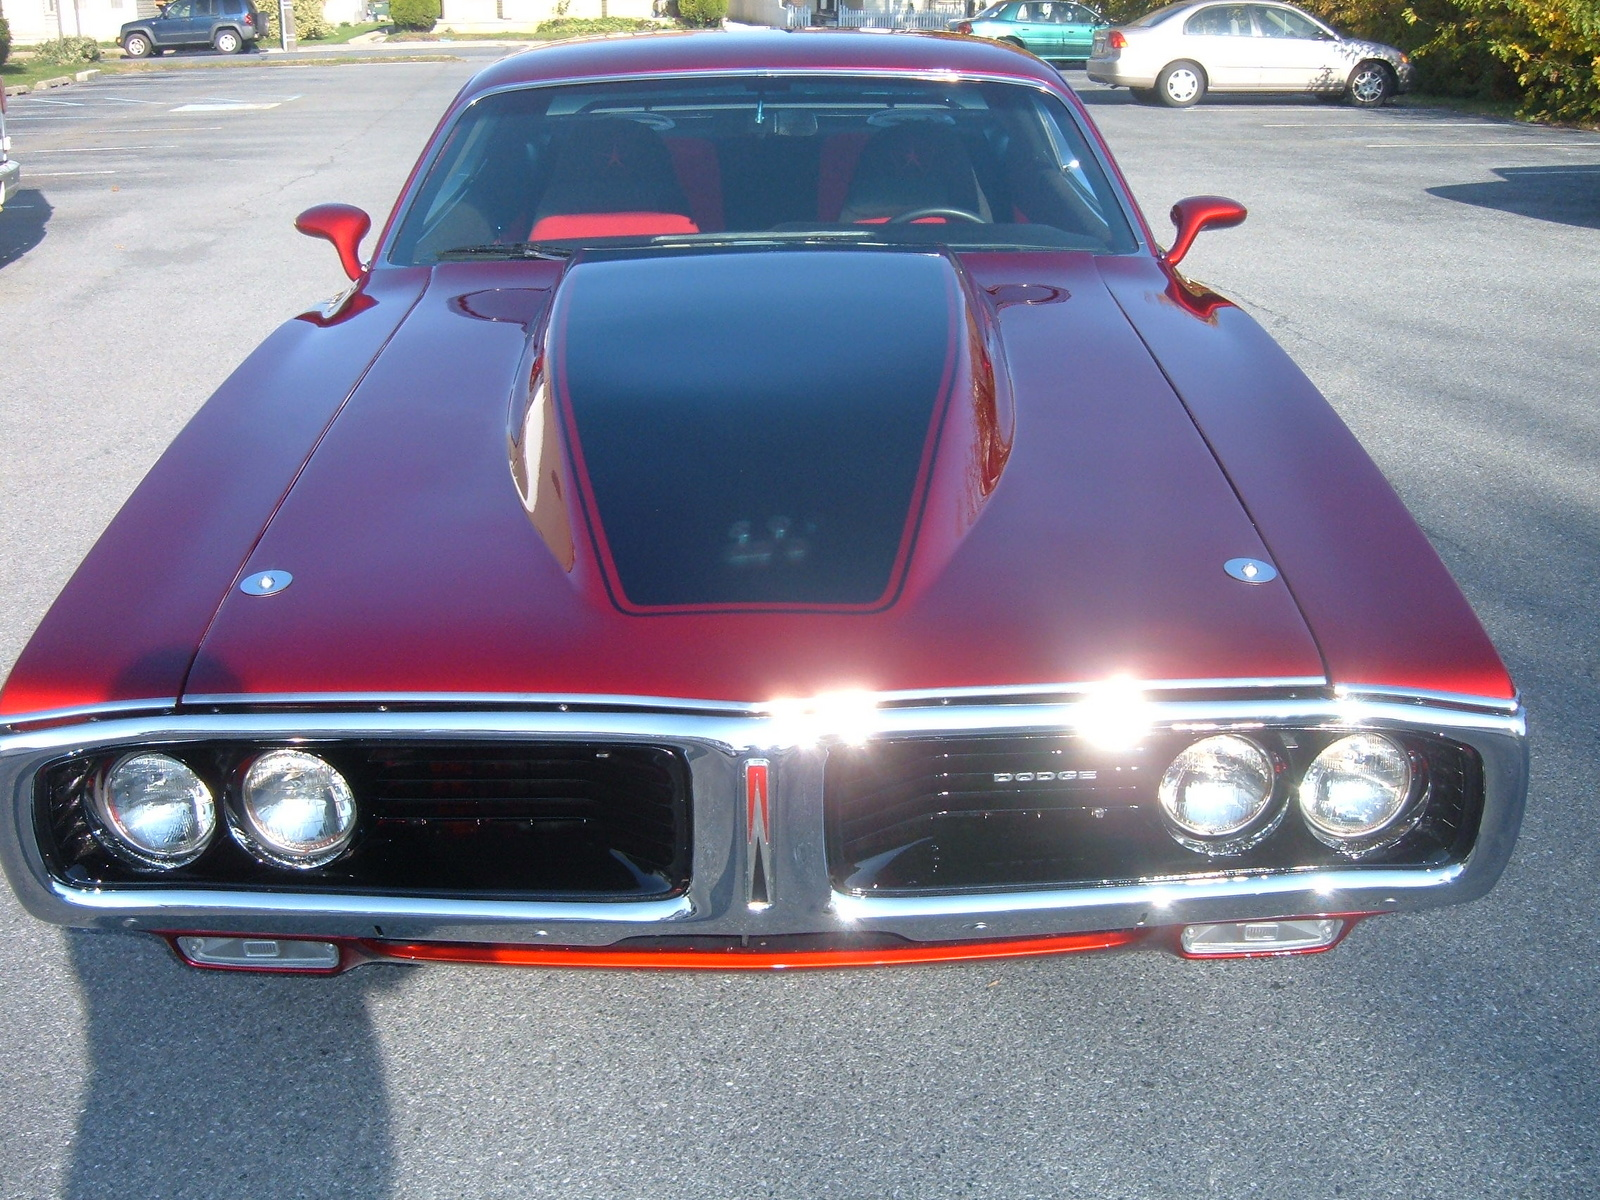 1972 Dodge Charger picture